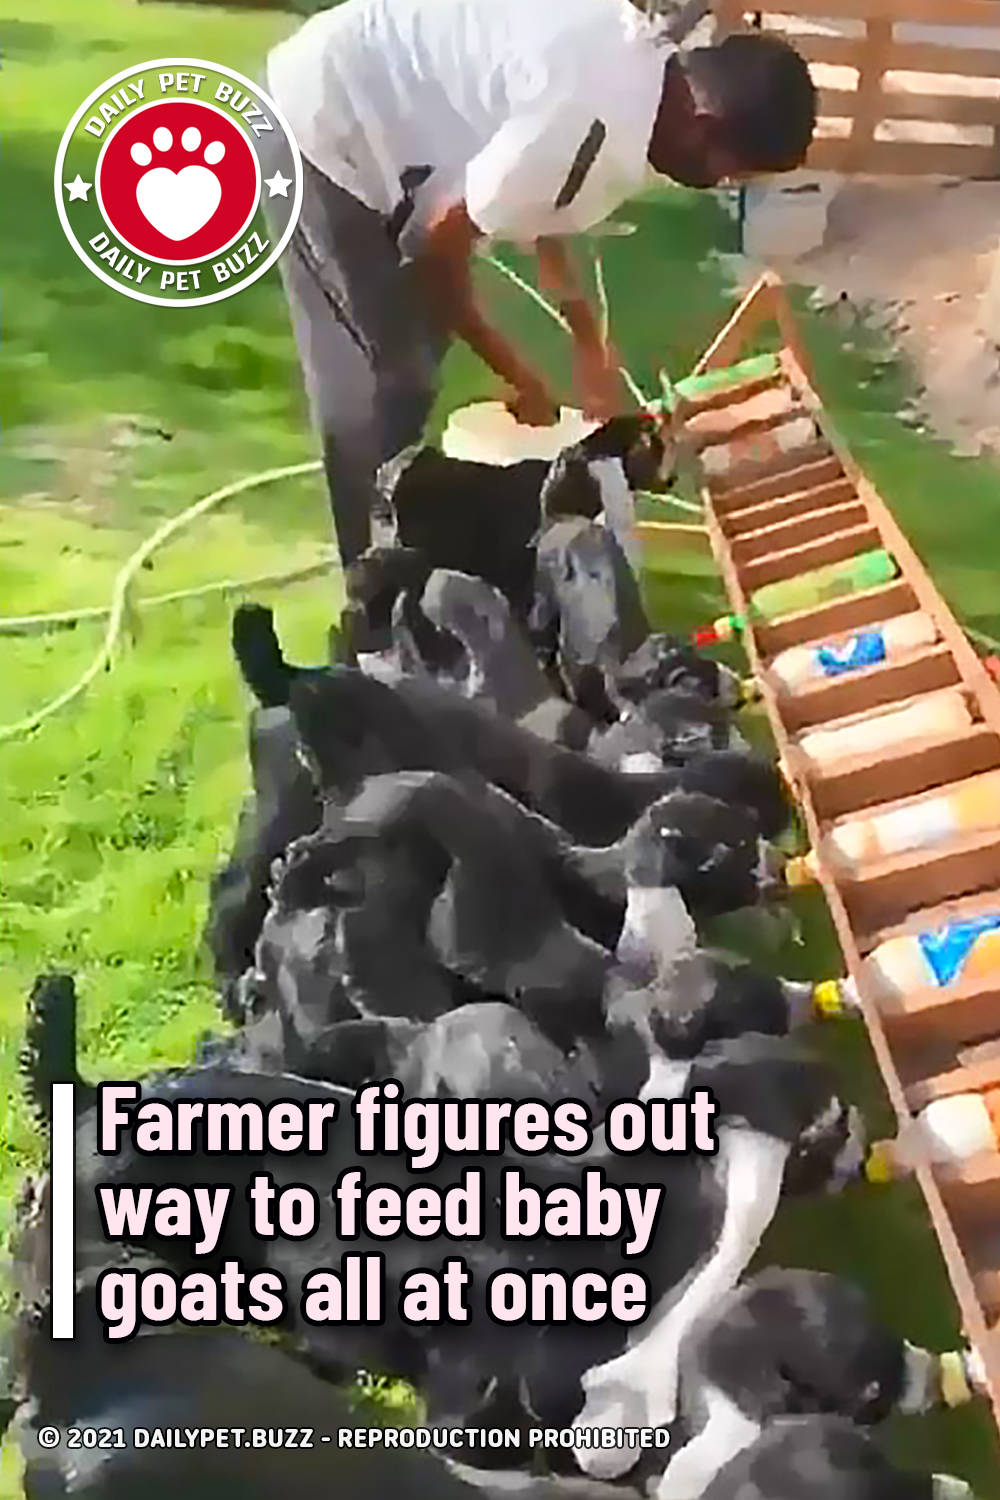 Farmer figures out way to feed baby goats all at once